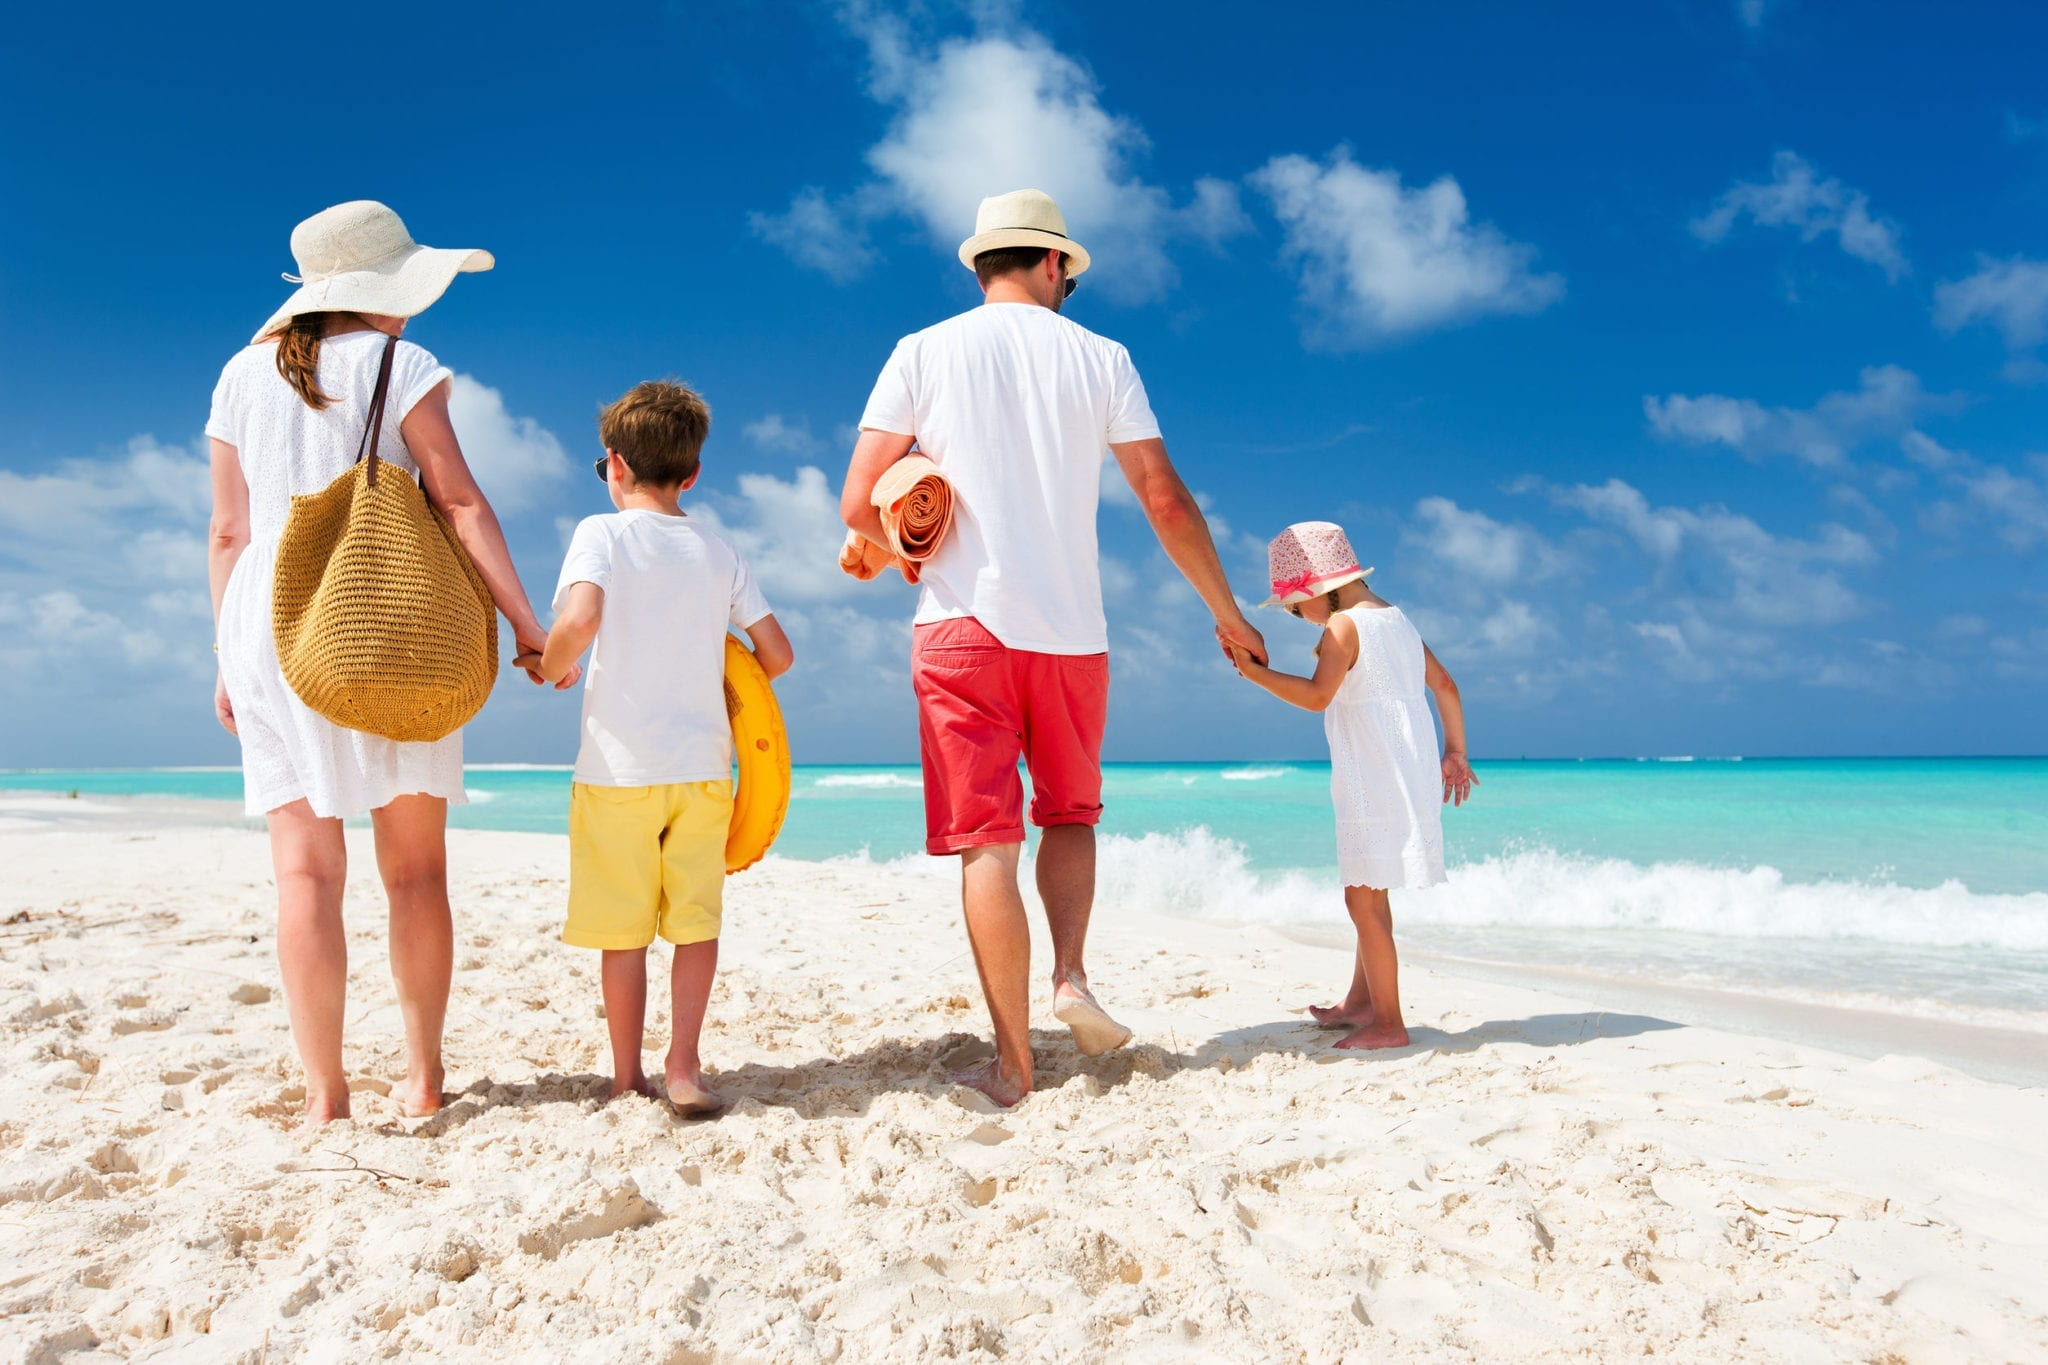 Visiting a Florida Beach This Summer? Keep Your Kids Safe